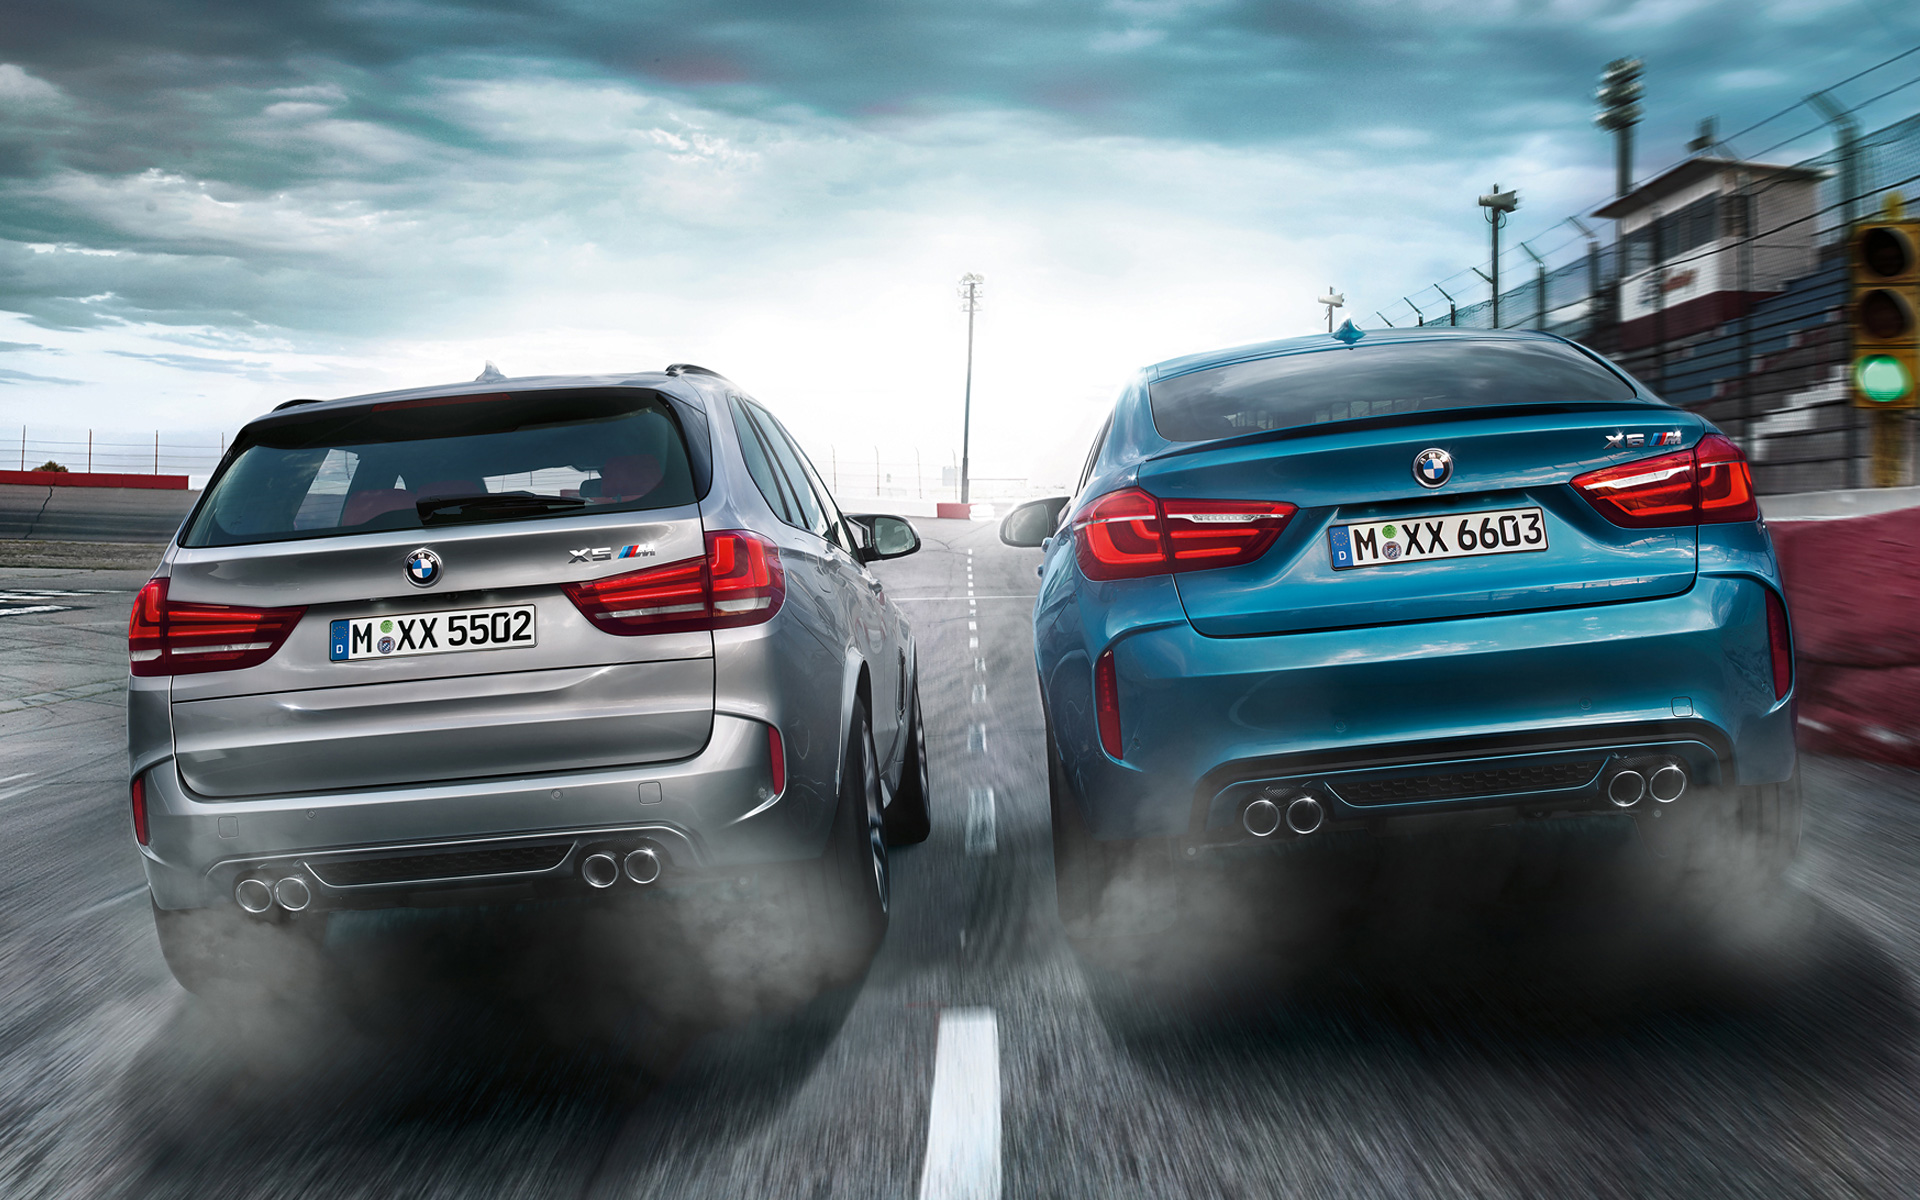 BMW X5 M and X6 M Rear View racetrack driving